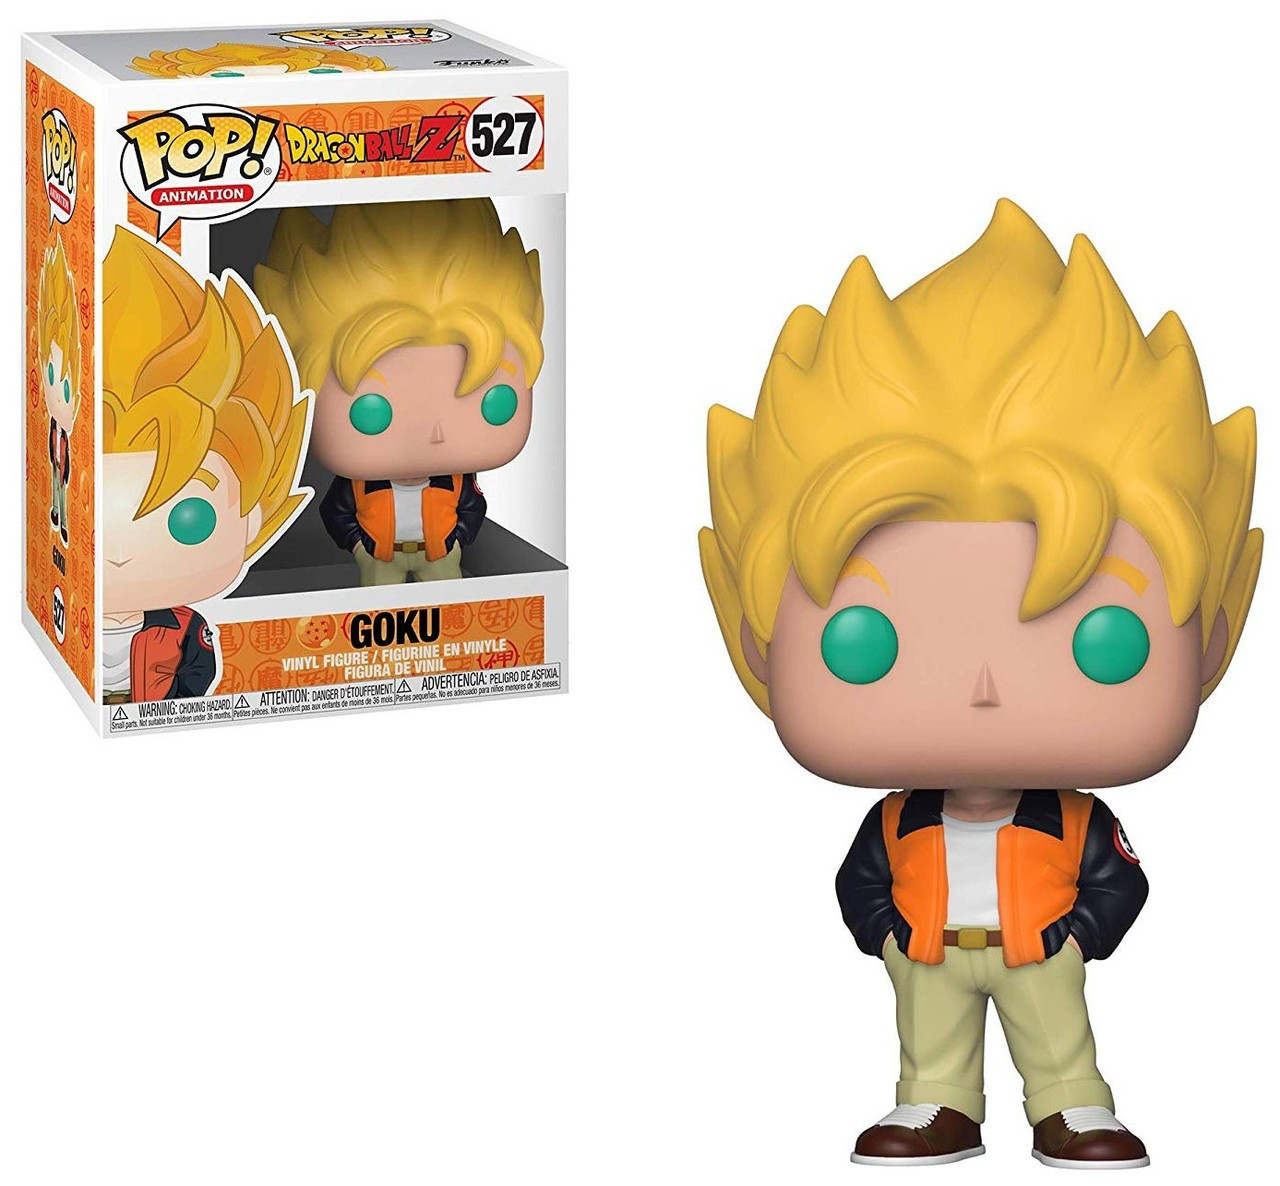 1d613ab5a31 Funko Dragon Ball Z Funko POP Animation Goku Vinyl Figure 527 Casual -  ToyWiz